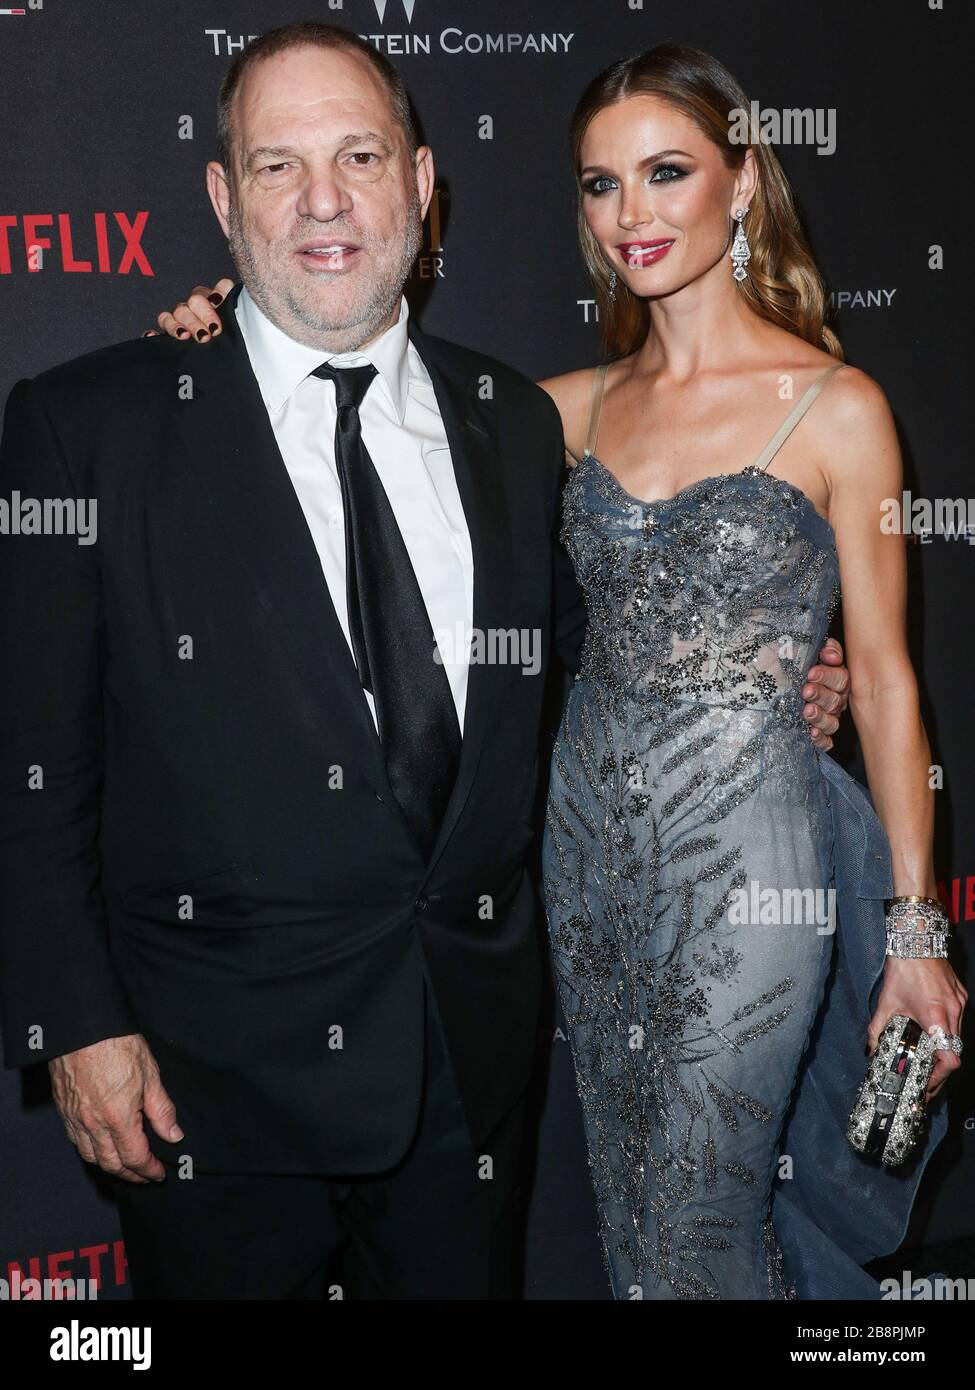 (FILE) Harvey Weinstein Tests Positive for Coronavirus COVID-19. Harvey Weinstein Tests Positive For Coronavirus In New York State Prison. Convicted Producer In Isolation. BEVERLY HILLS, LOS ANGELES, CALIFORNIA, USA - JANUARY 08: American film producer Harvey Weinstein and wife/fashion designer Georgina Chapman arrive at The Weinstein Company and Netflix Golden Globe Party, presented with FIJI Water, Grey Goose Vodka, Lindt Chocolate, and Moroccan Oil held at The Beverly Hilton Hotel on January 8, 2017 in Beverly Hills, Los Angeles, California, United States. (Photo by Xavier Collin/Image Pres Stock Photo